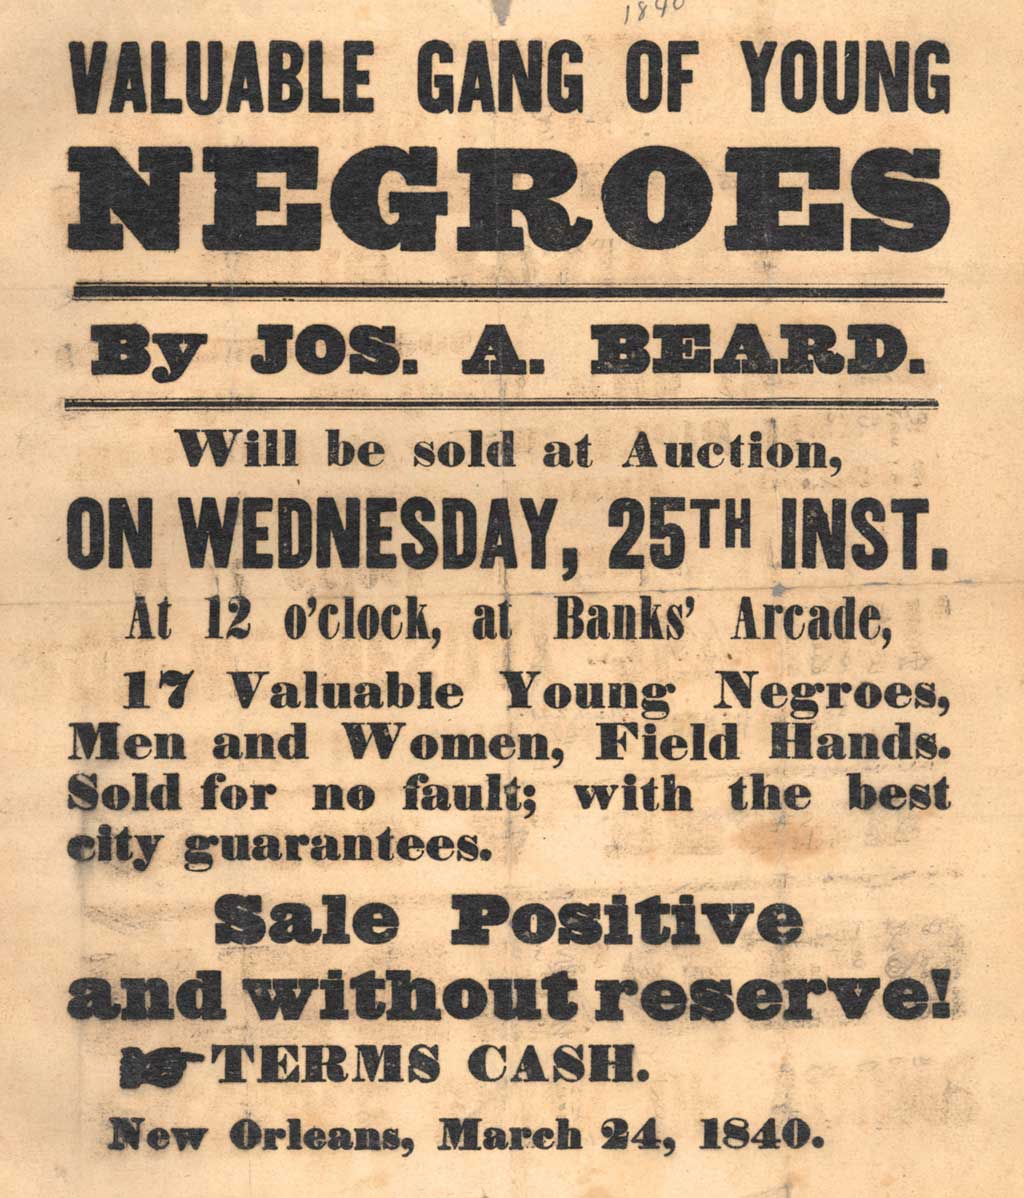 1840 poster advertising slaves for sale, New Orleans. 'Valuable Gang of Young Negroes', 17 men and women, to be sold at auction 25 March 1840 at Banks' Arcade